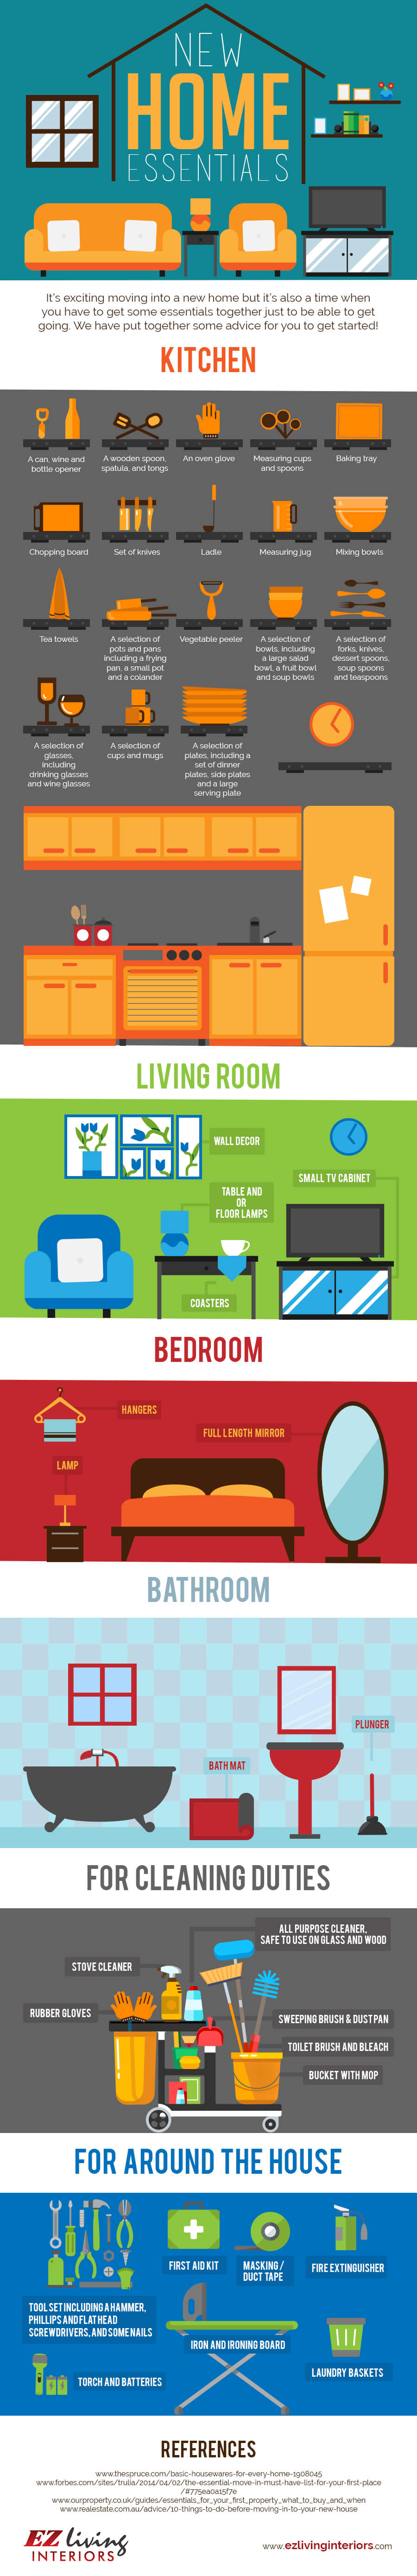 Essentials-for-a-New-Home-infographic-plaza